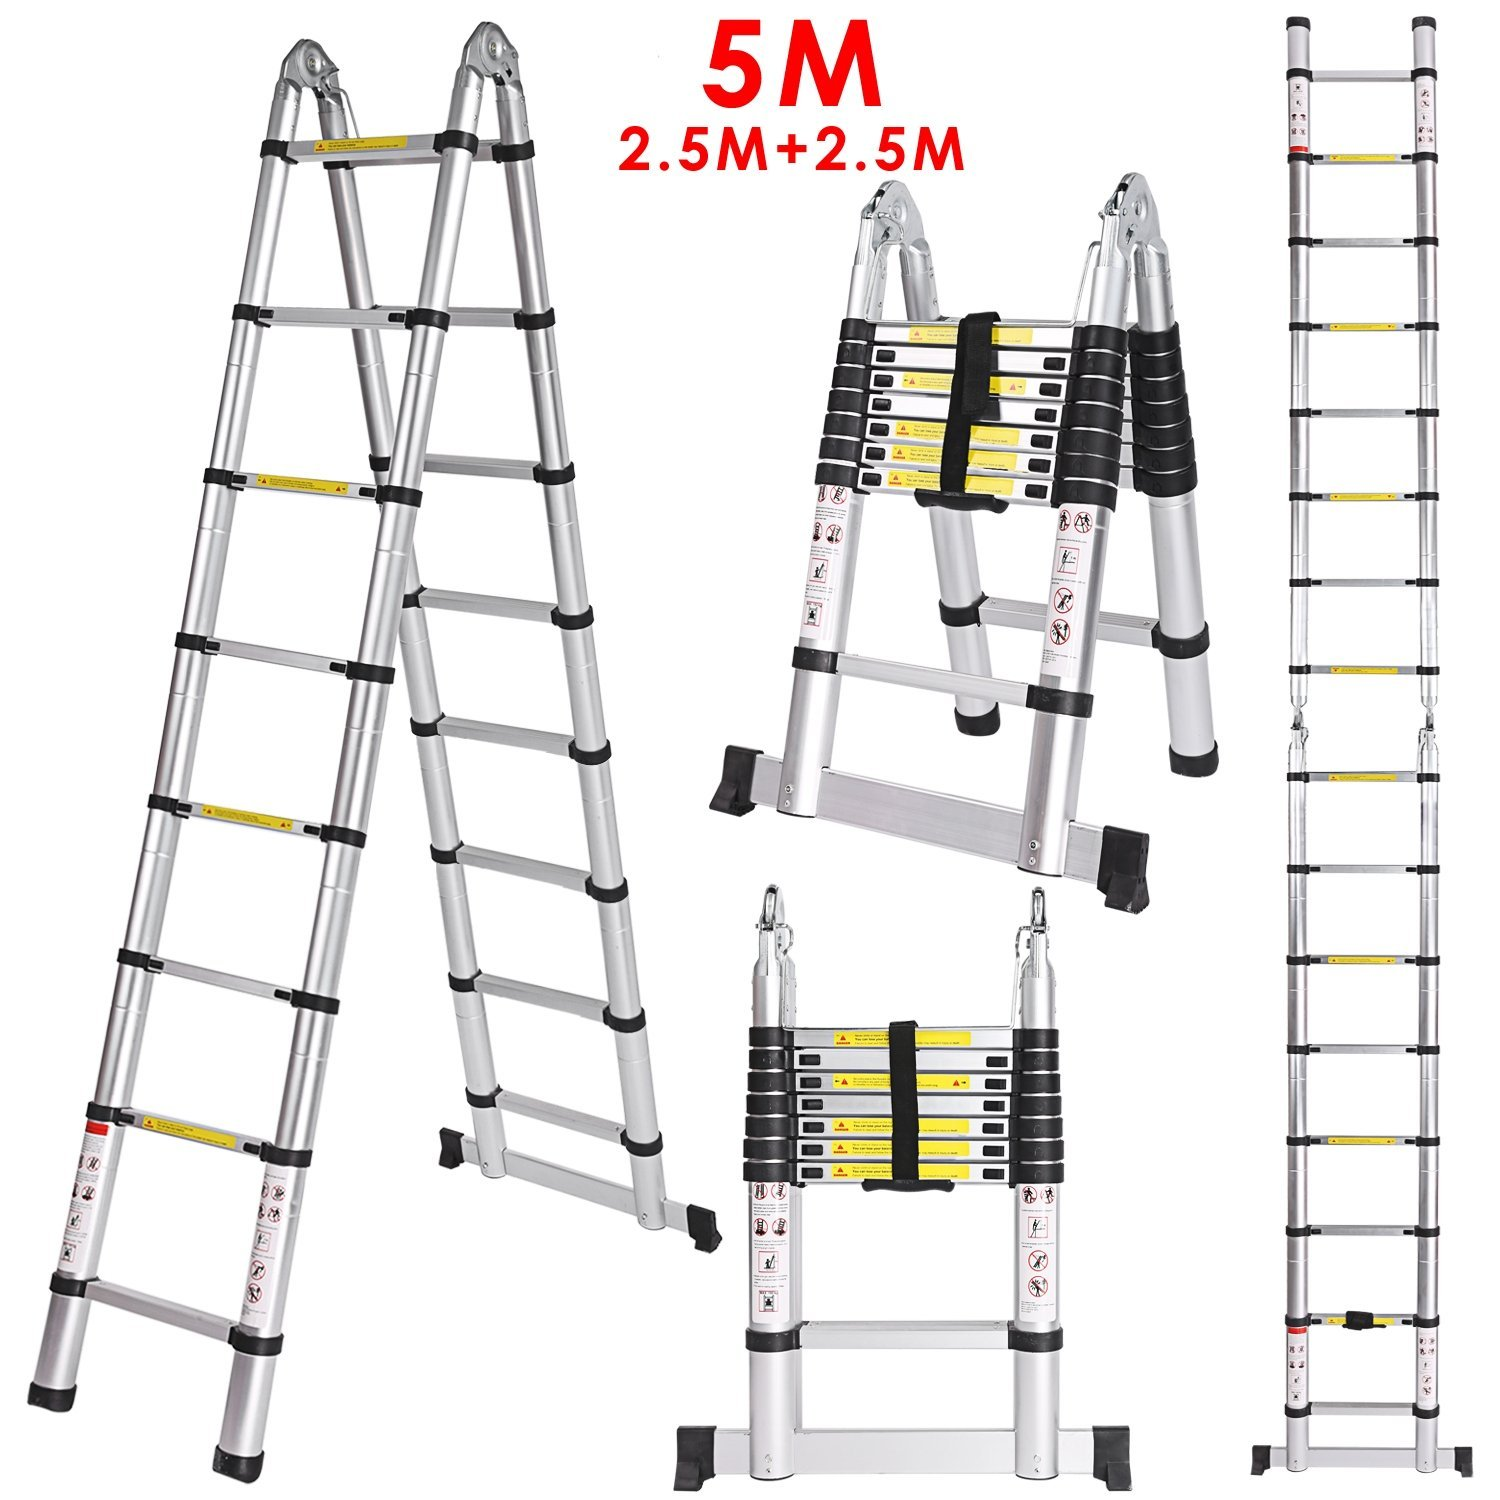 Best Telescopic Ladder (2018) - Telescopic Ladder Reviews